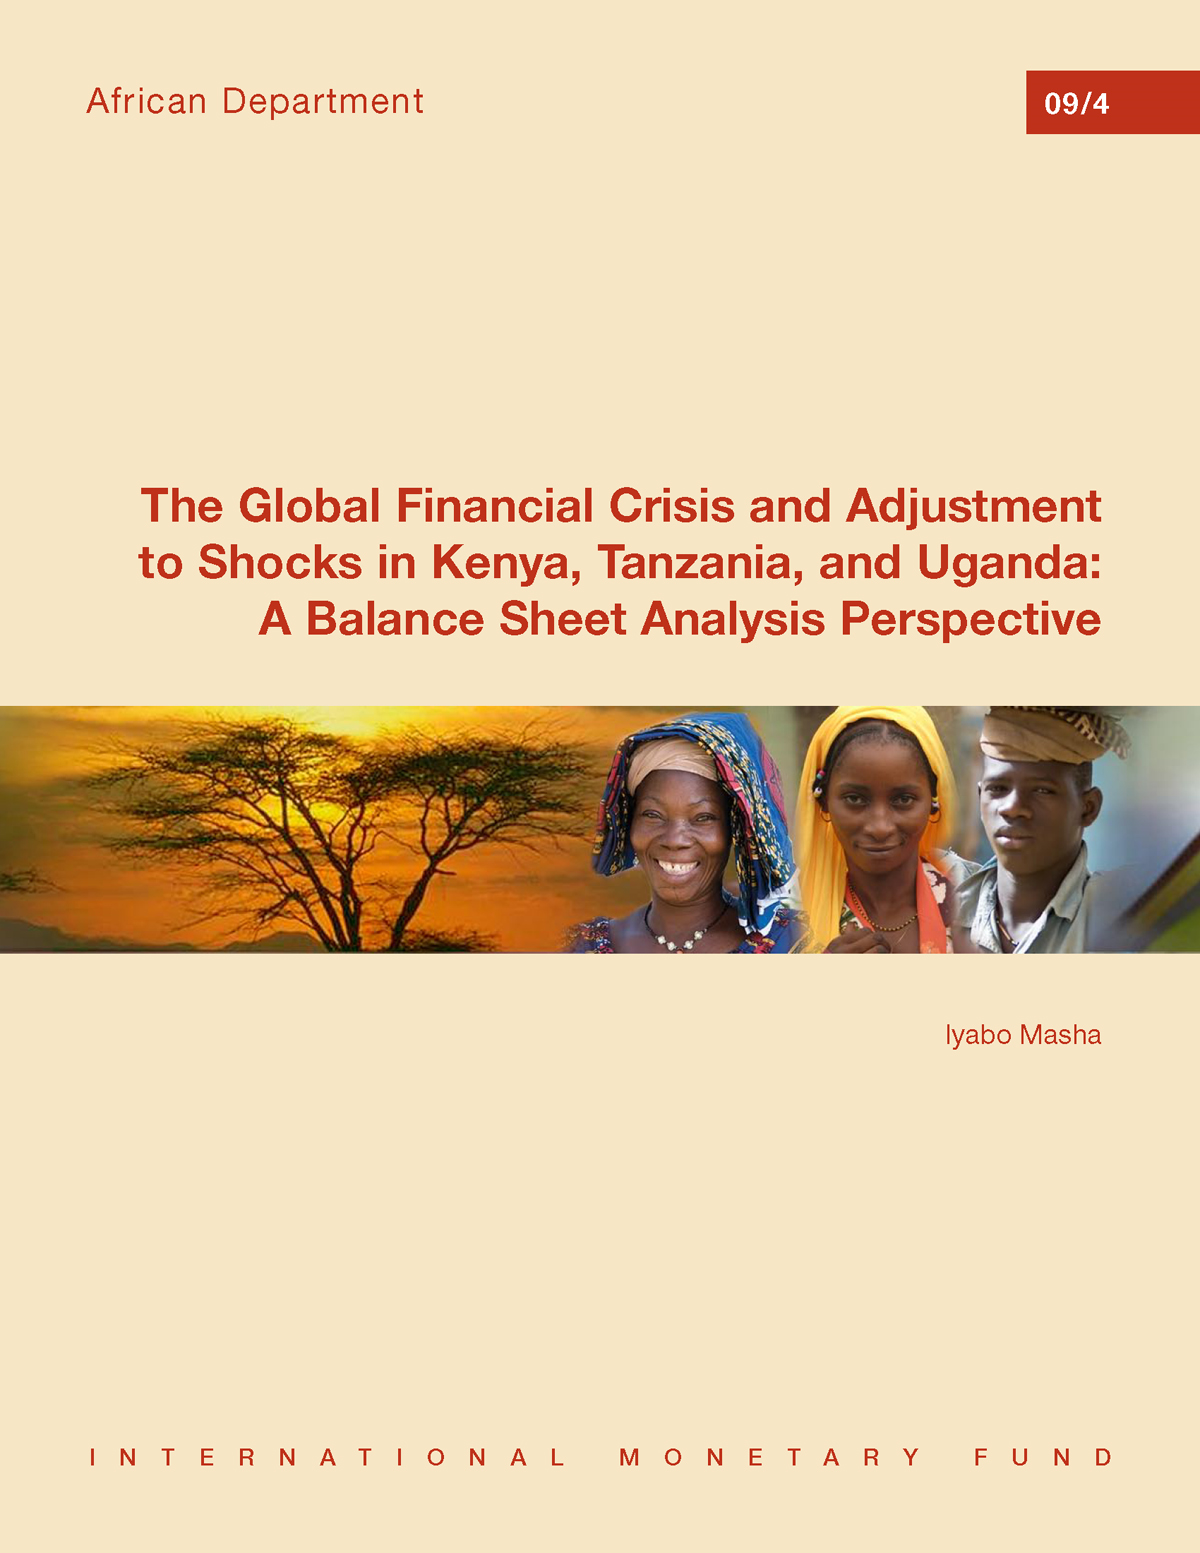 The Global Financial Crisis and Adjustment to Shocks in Kenya, Tanzania, and Uganda: A Balance Sheet Analysis Perspective